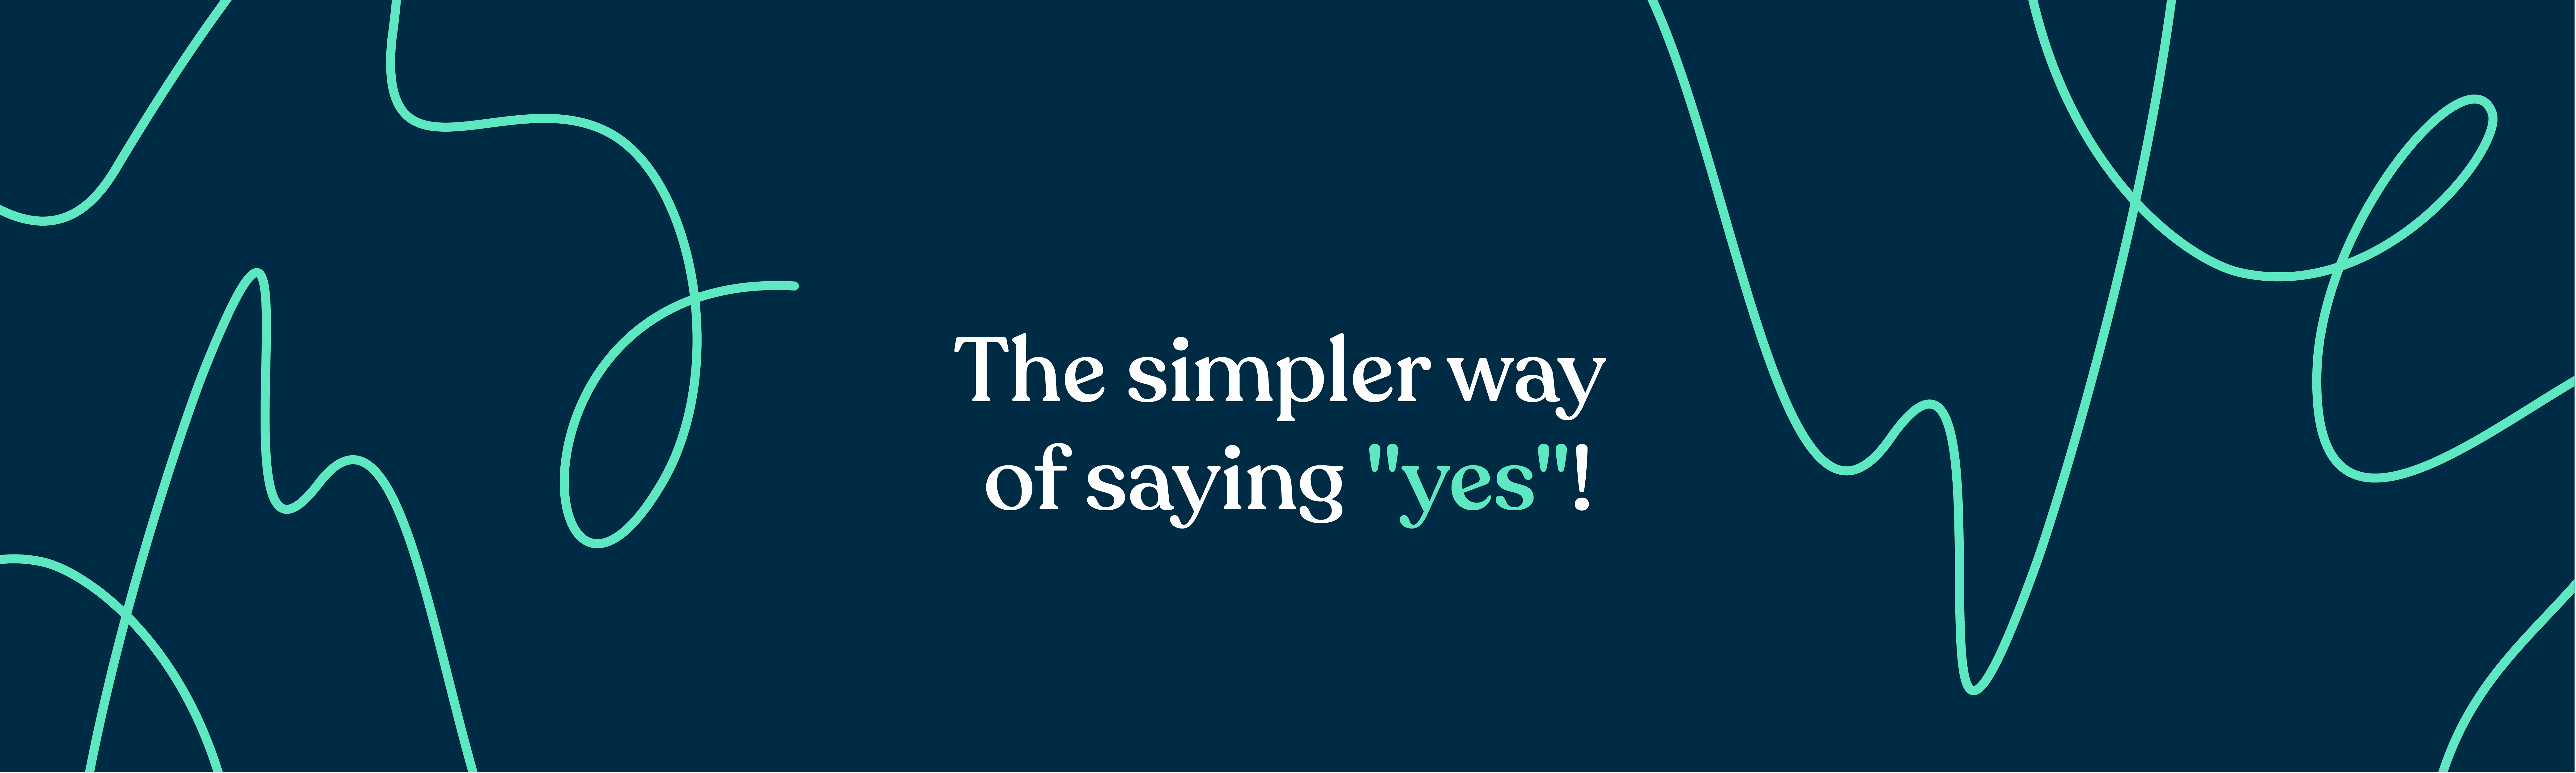 Review Yousign: The simpler way of saying yes - appvizer